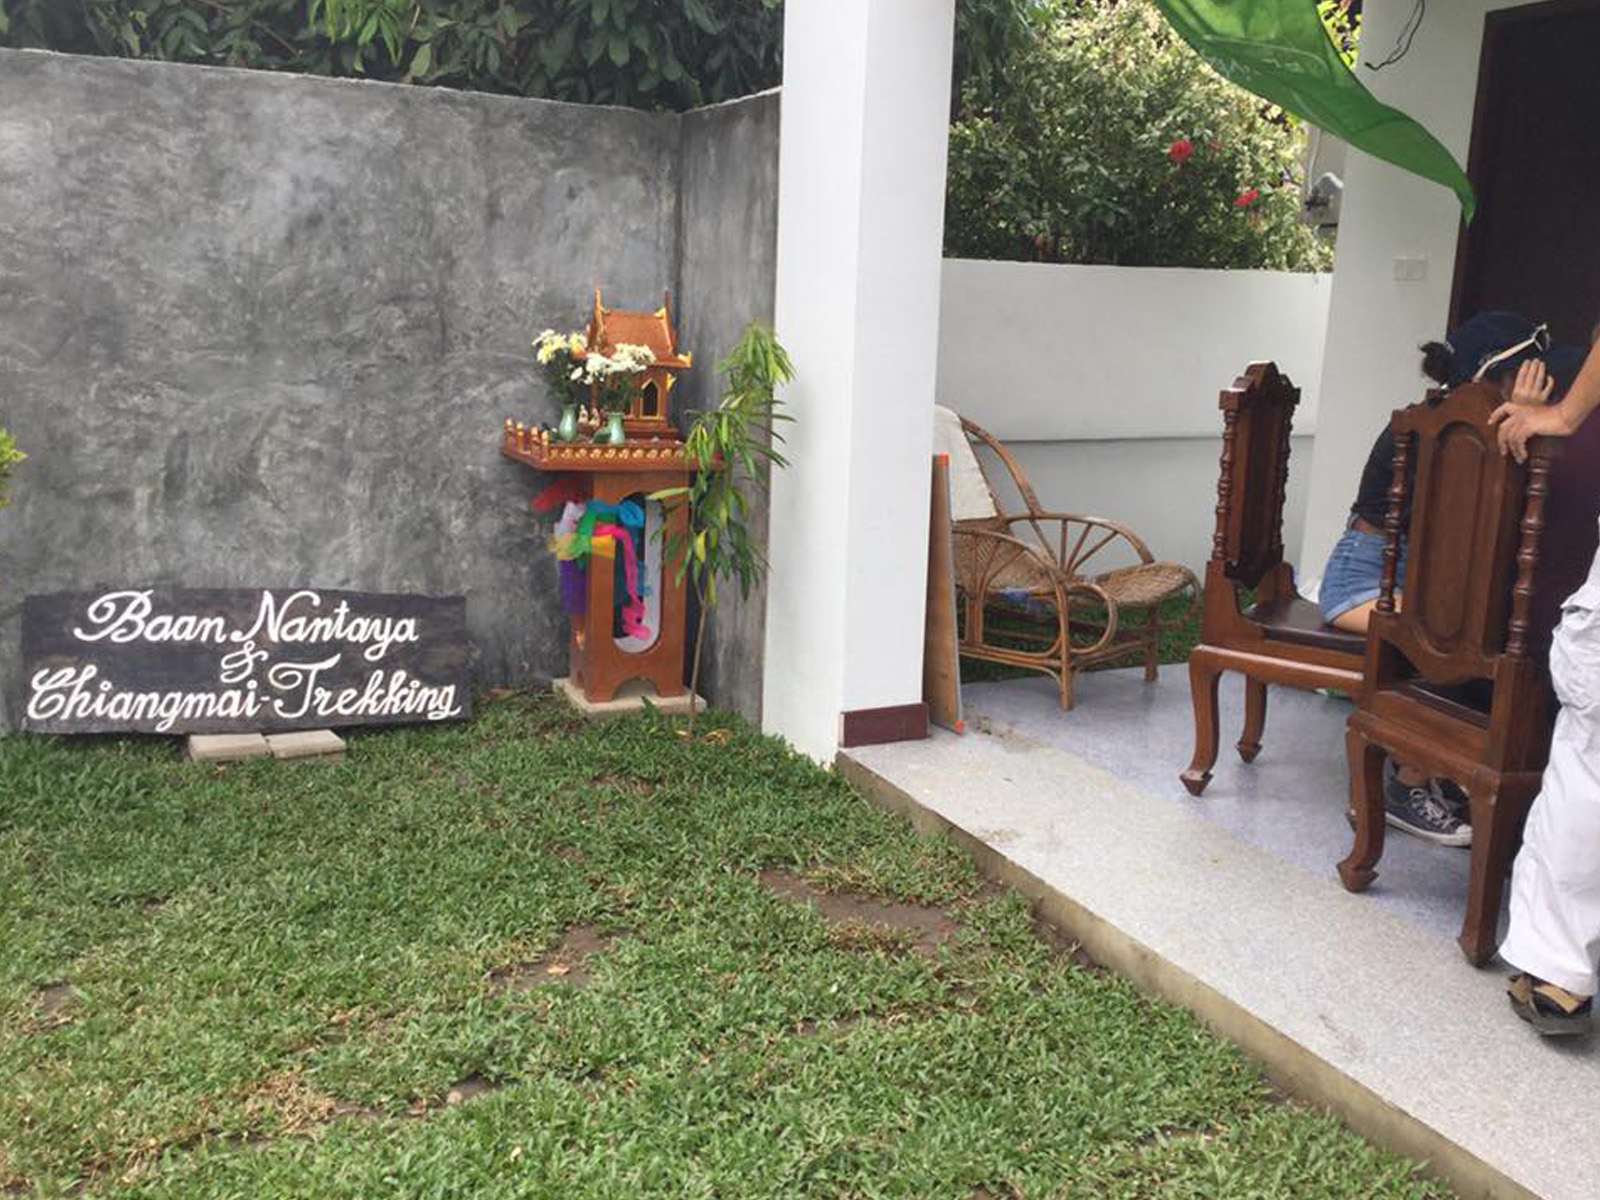 Guesthouse in the Old City of Chiang Mai | Chiang Mai Trekking | Le meilleur trekking à Chiang Mai avec Piroon Nantaya